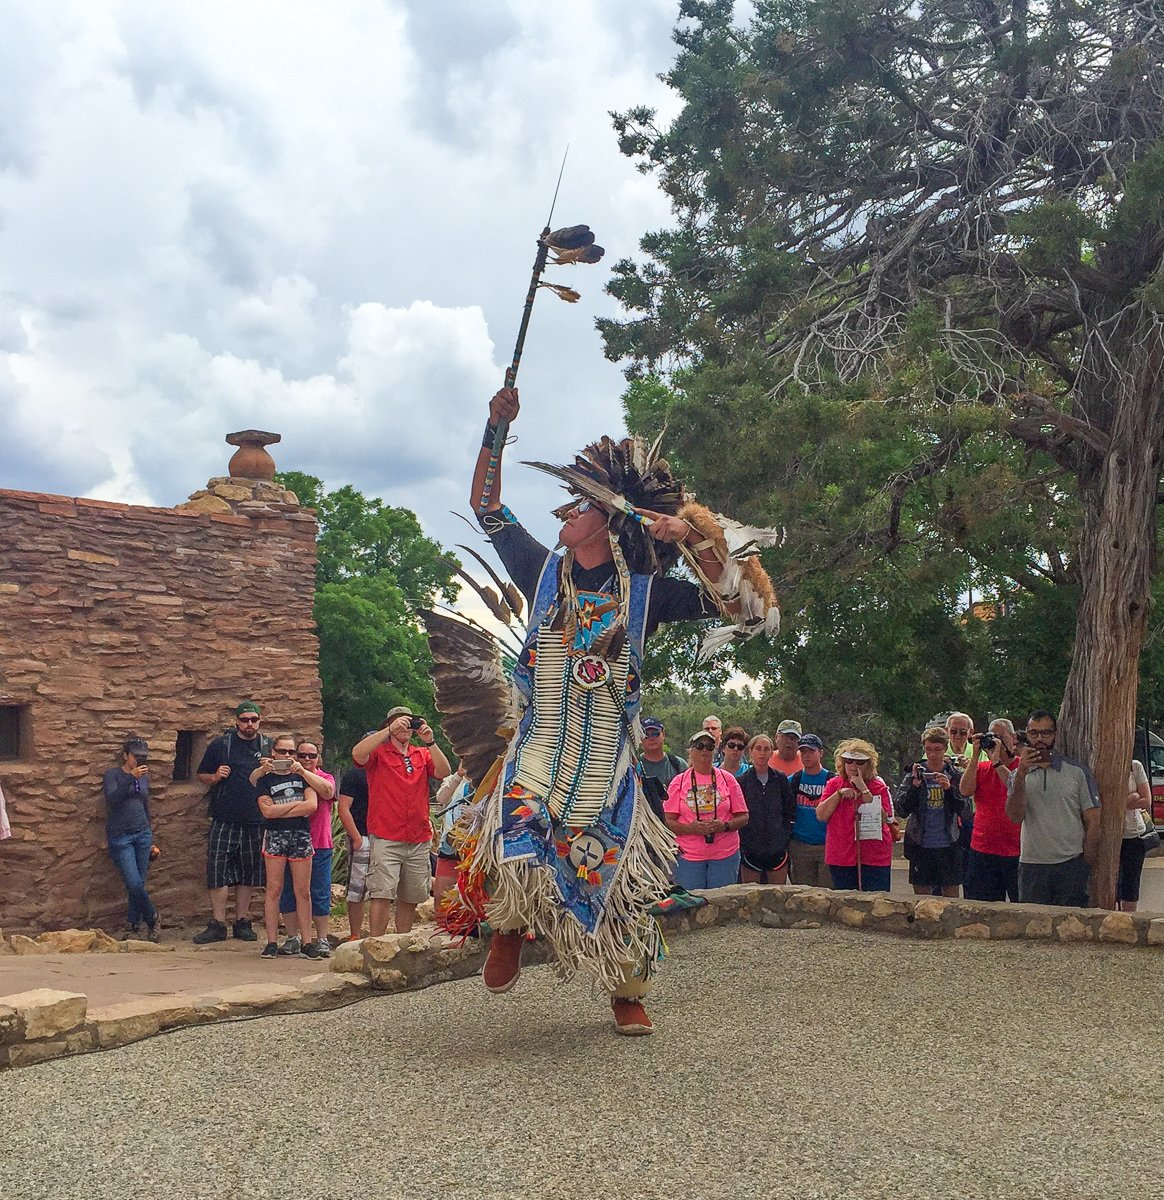 A Navajo troupe member performing a traditional dance near Hopi House at the South Rim of the Grand Canyon